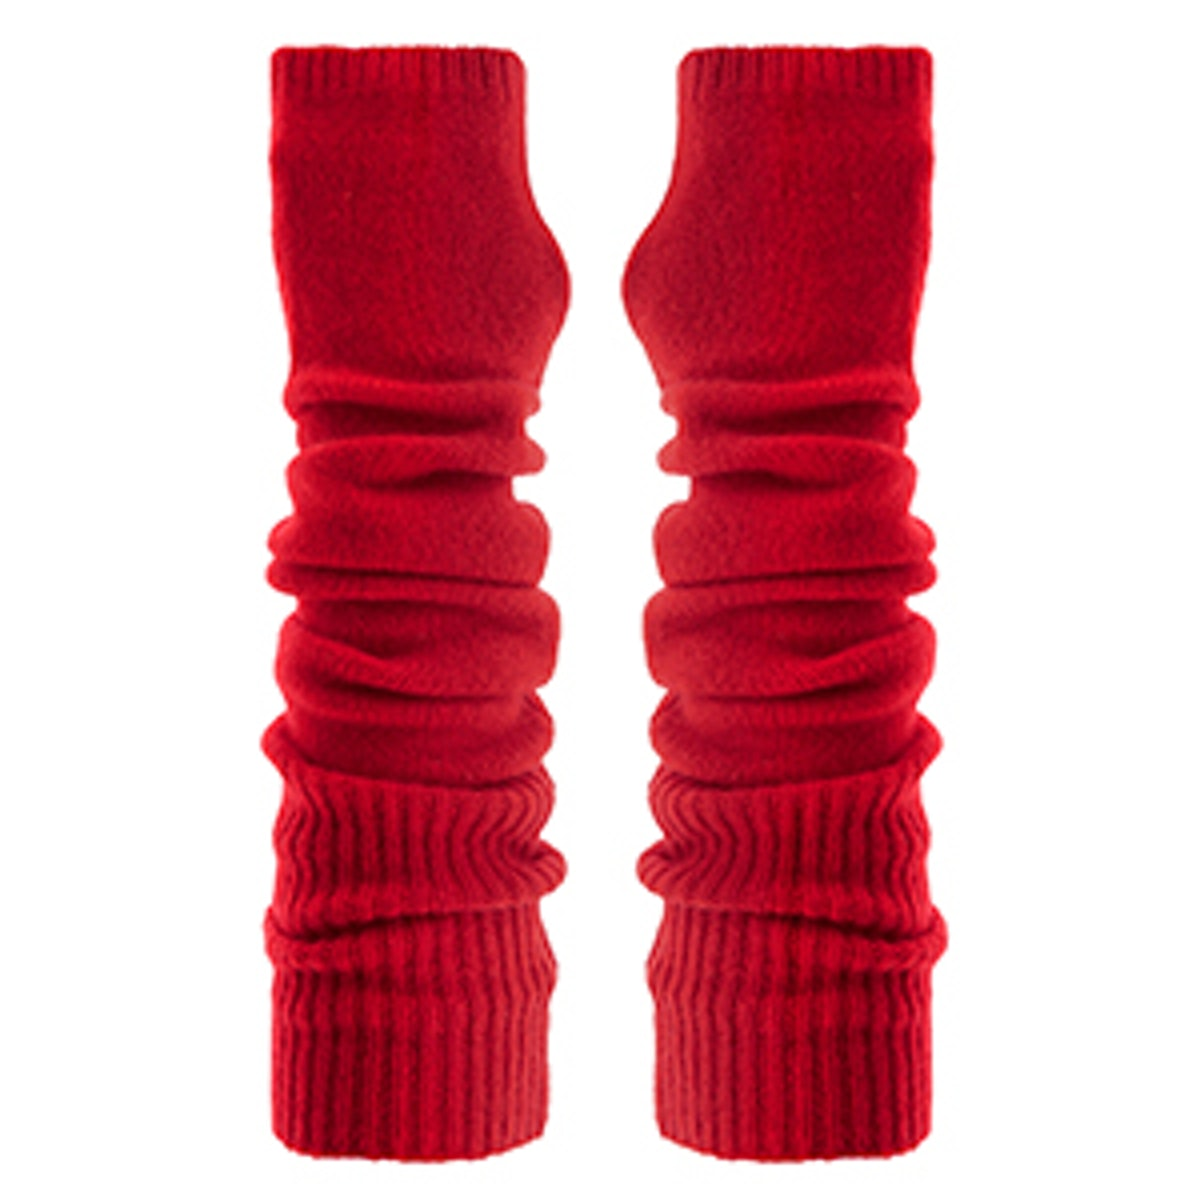 Wool and Cashmere-Blend Arm Warmers